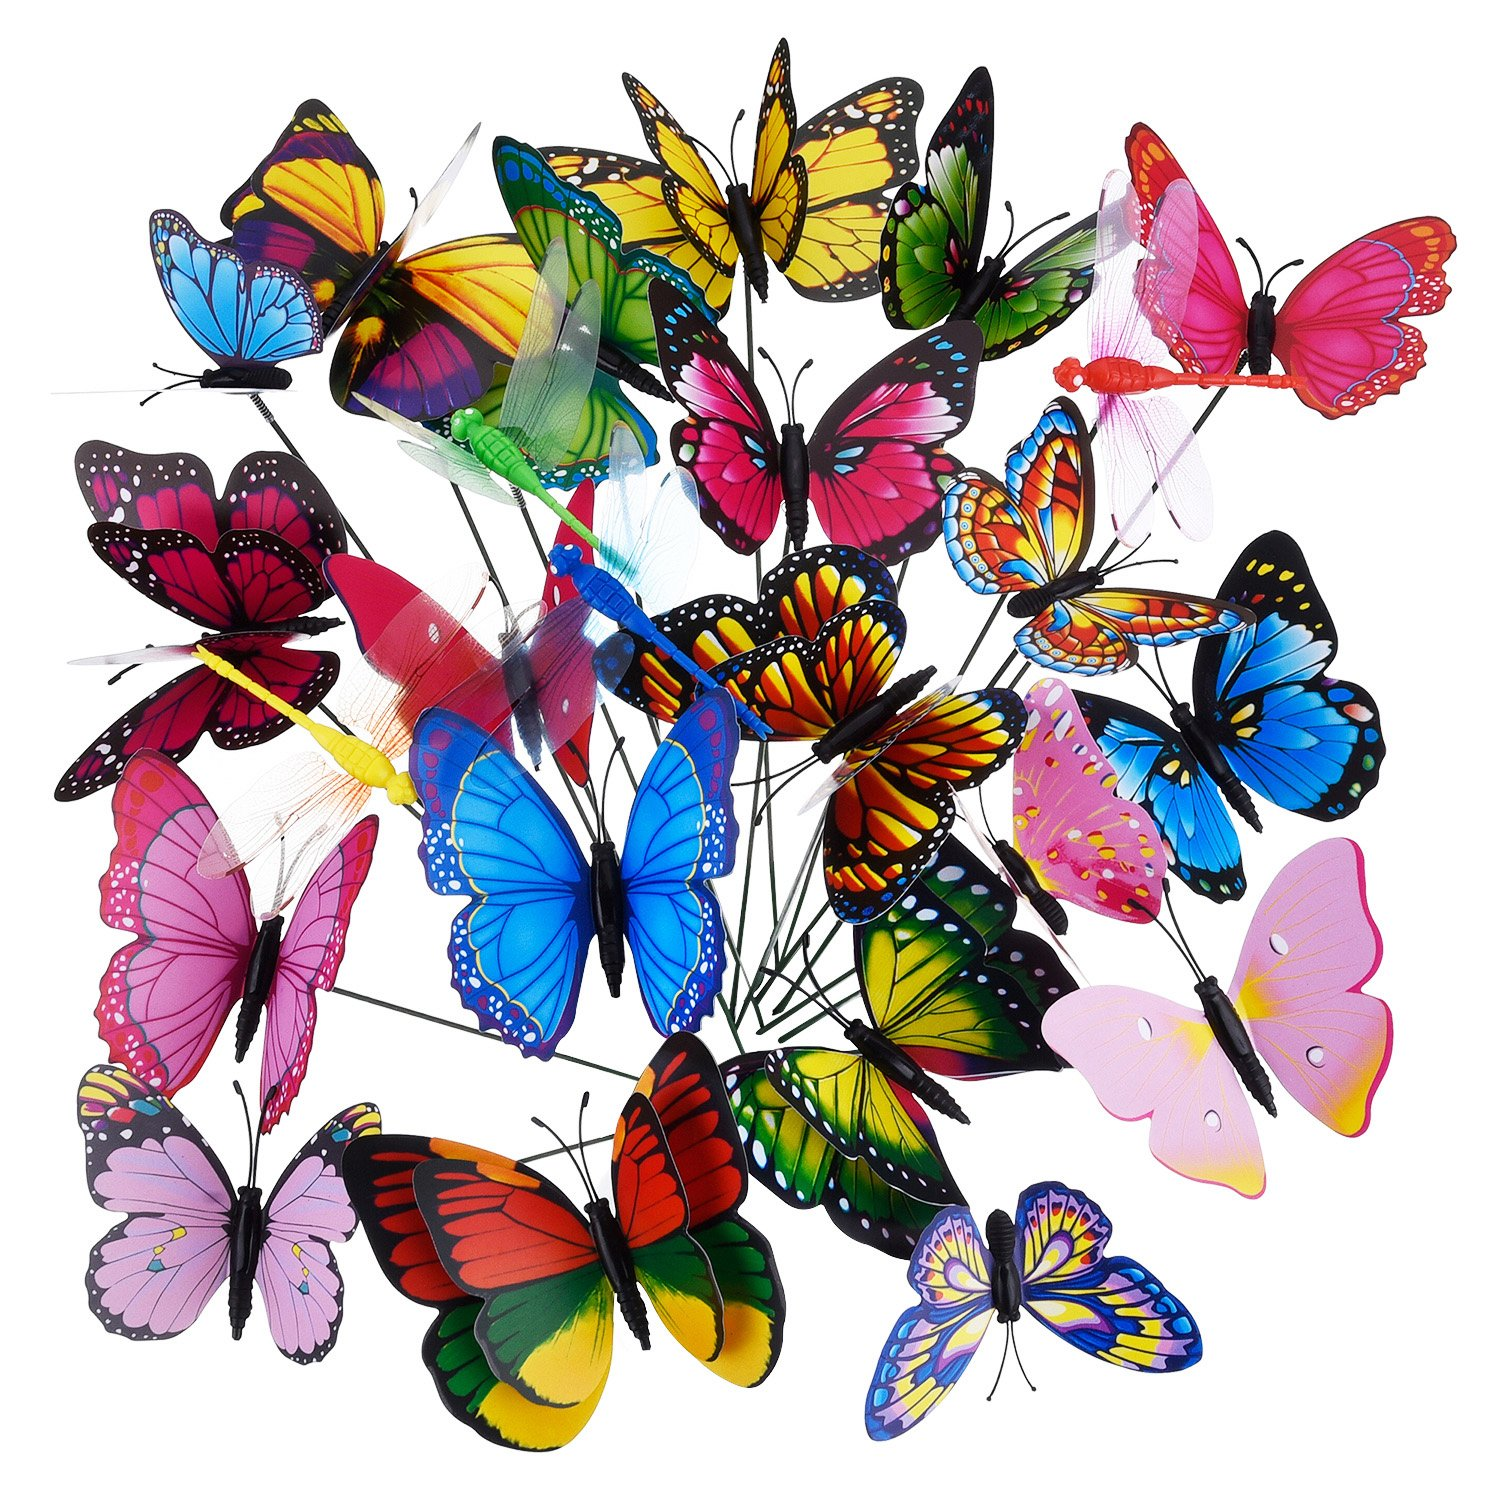 24 Pieces in Total Garden Butterflies on Sticks Dragonflies Butterflies Stakes Butterflies Decorations Ornaments Party Supplies